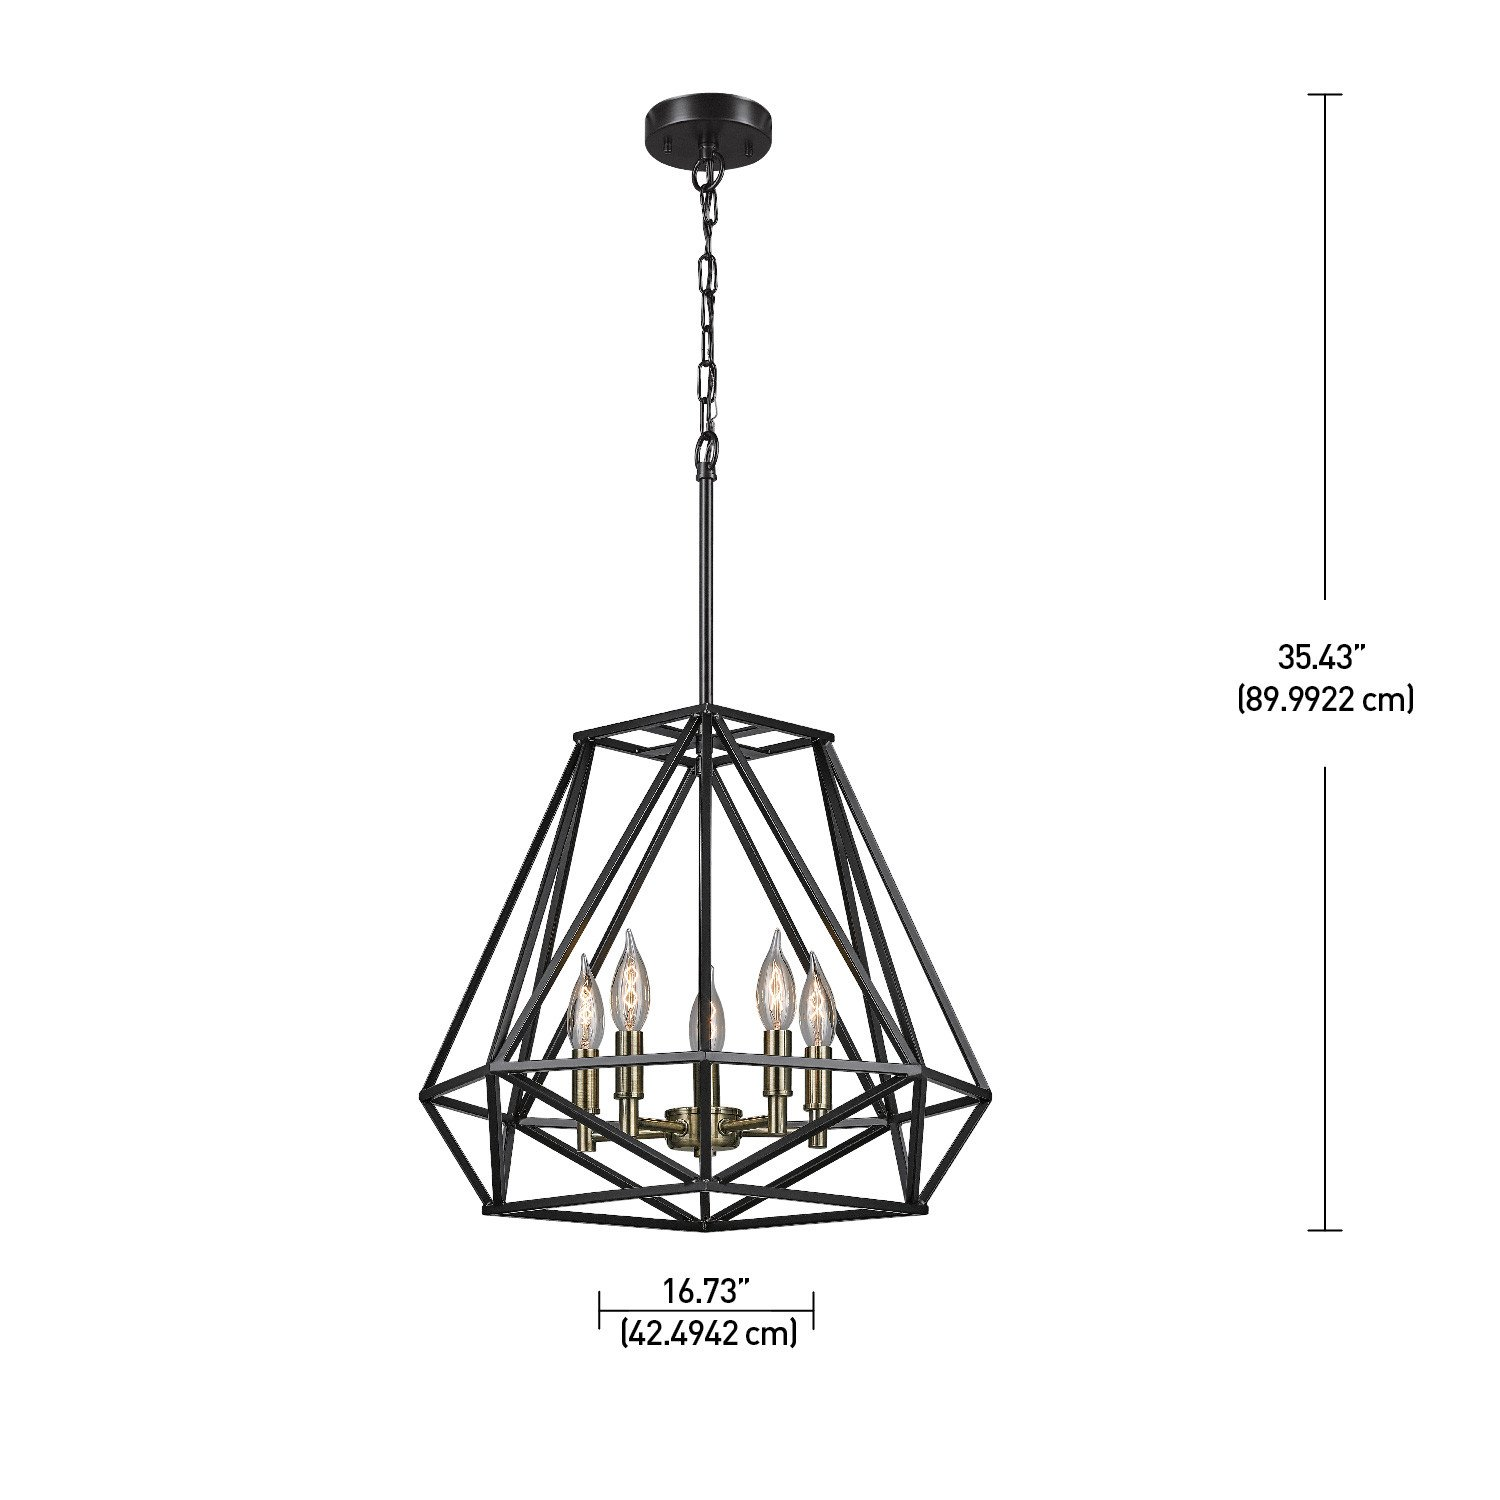 Globe electric sansa 5 light chandelier dark bronze finish globe electric sansa 5 light chandelier dark bronze finish antique brass accents 65435 amazon arubaitofo Gallery